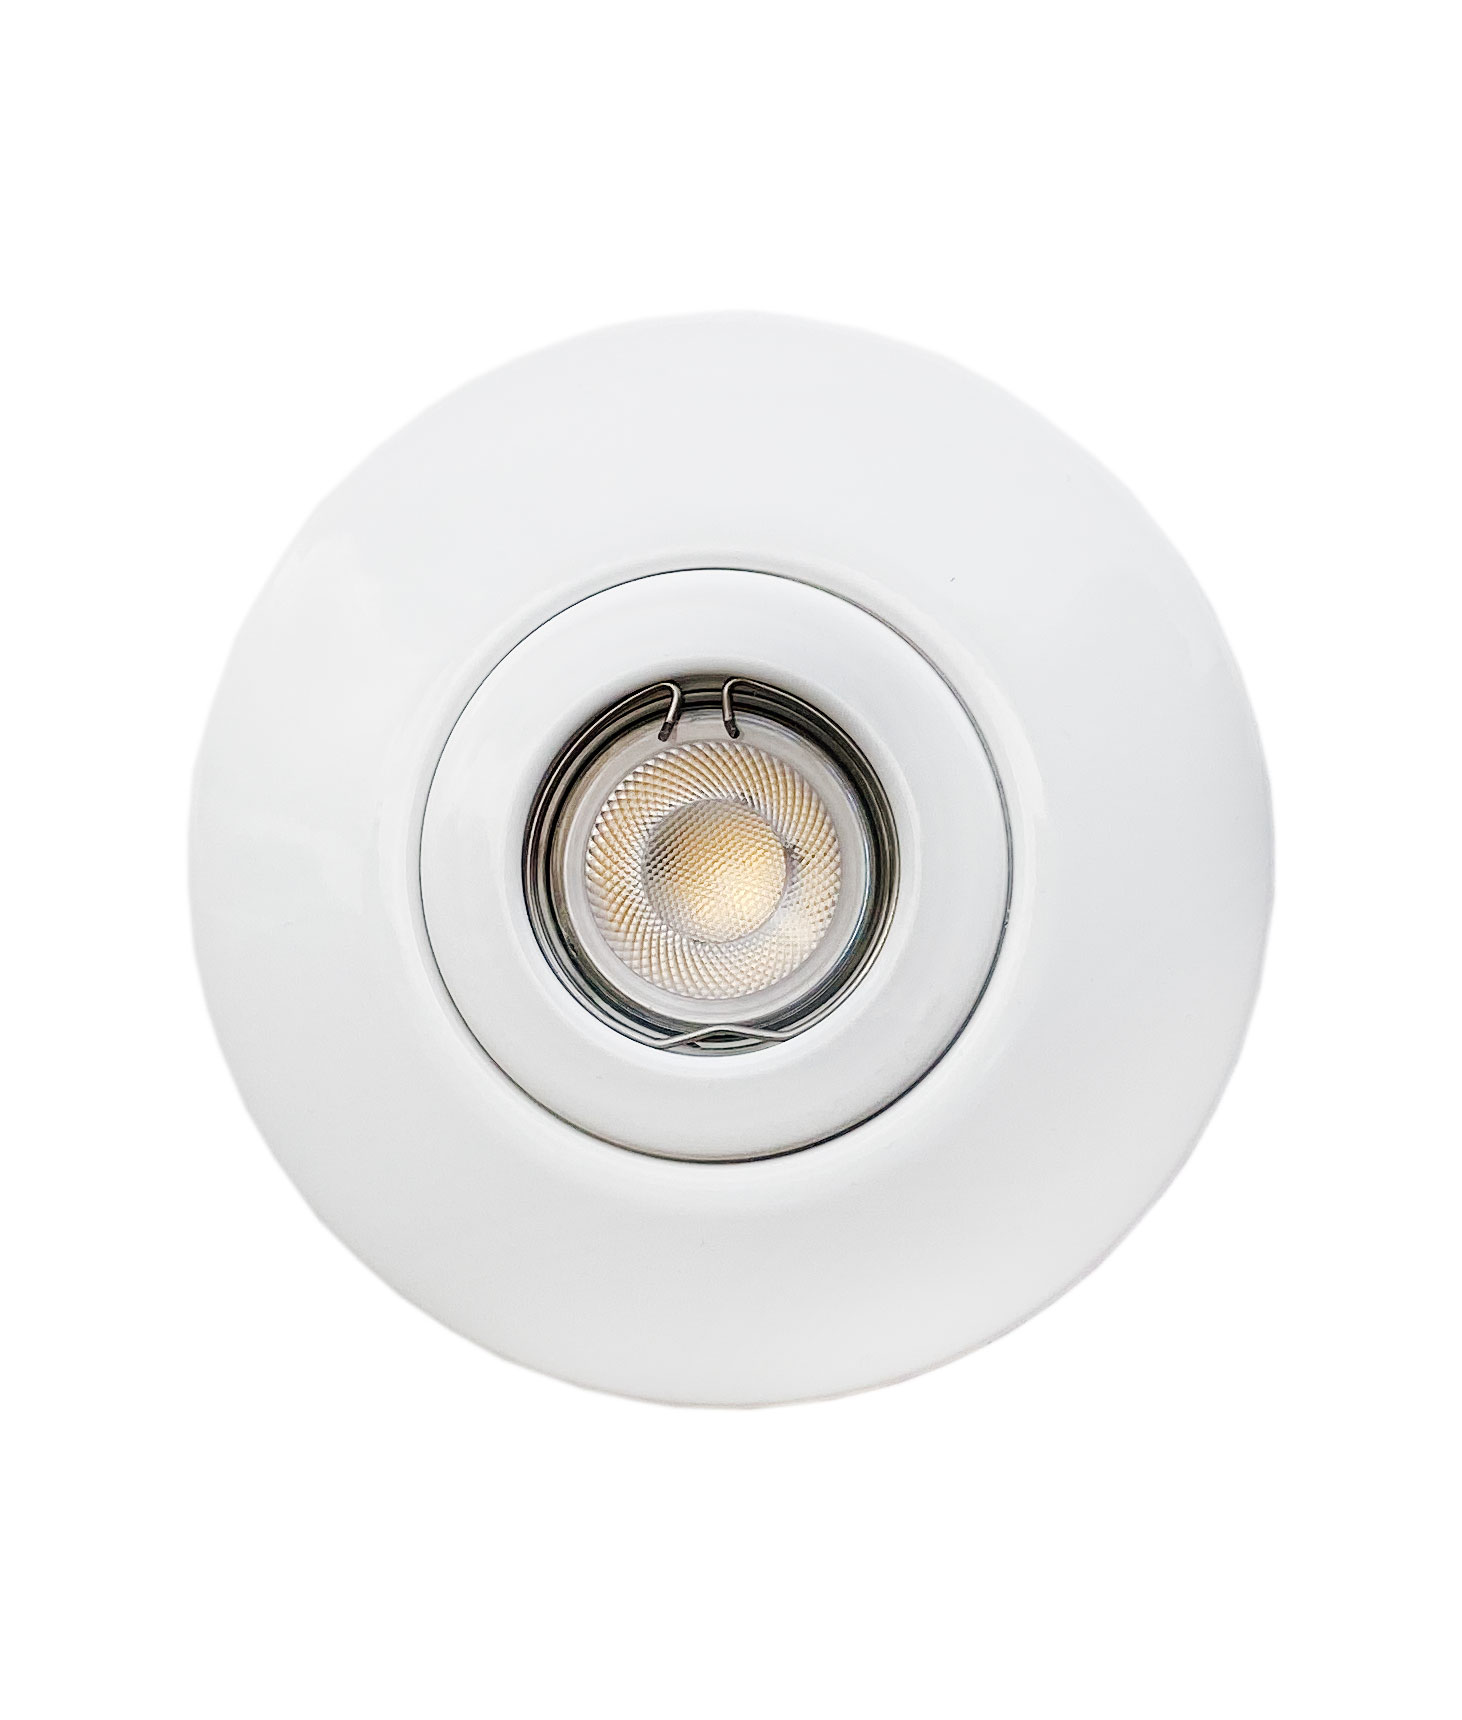 Downlight Converter with Osram 6.5w LED